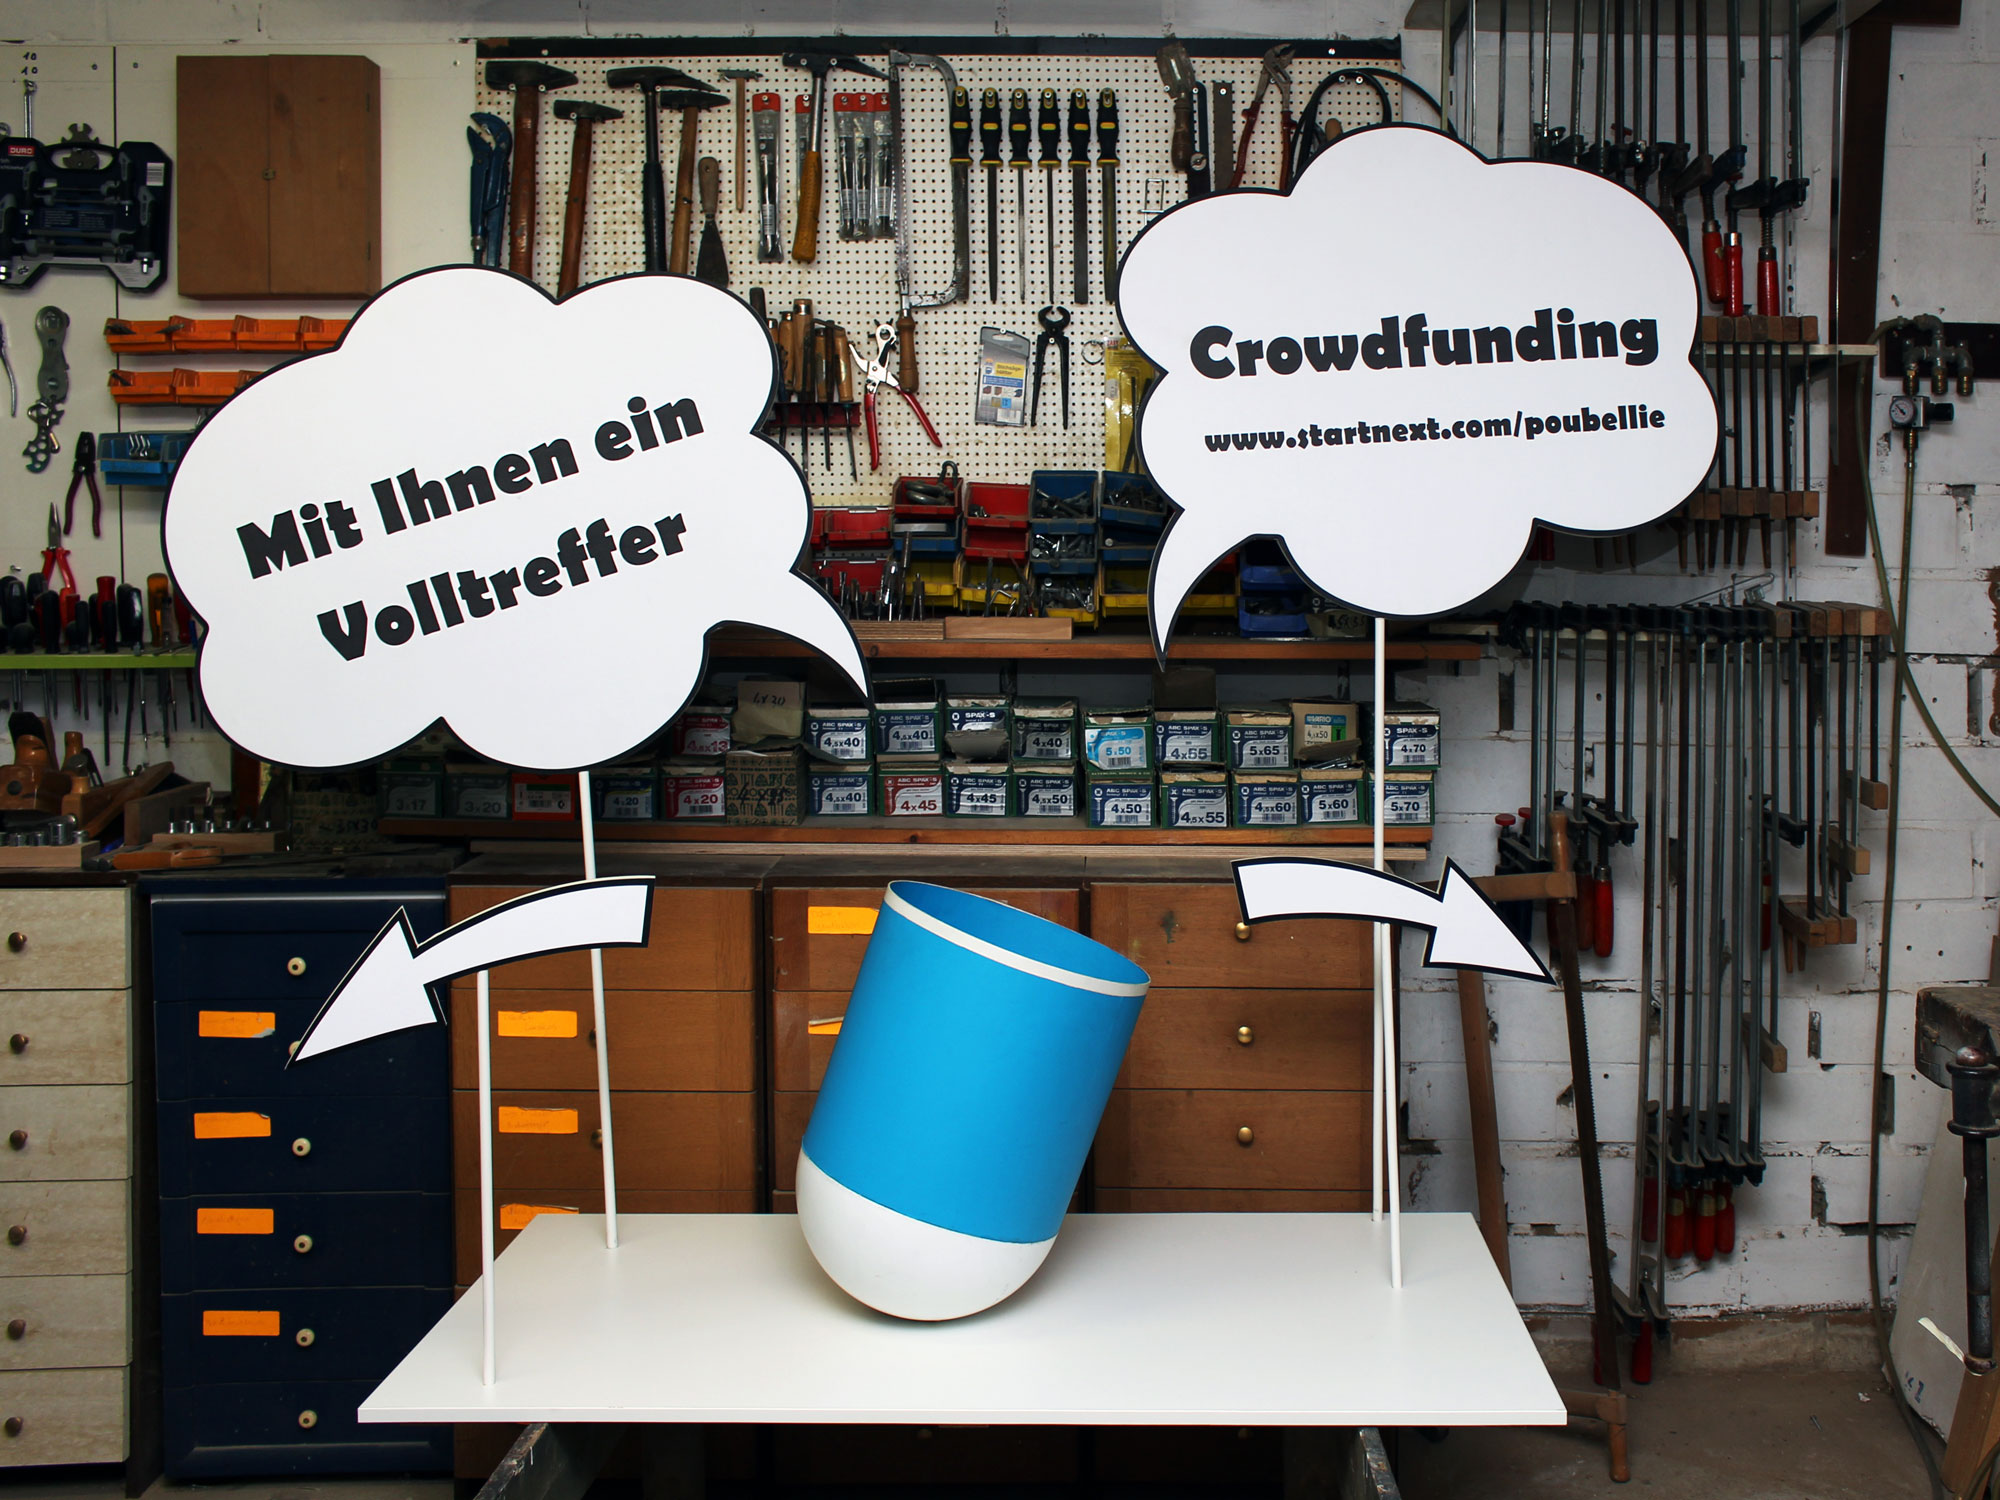 Crowdfunding Poubellie